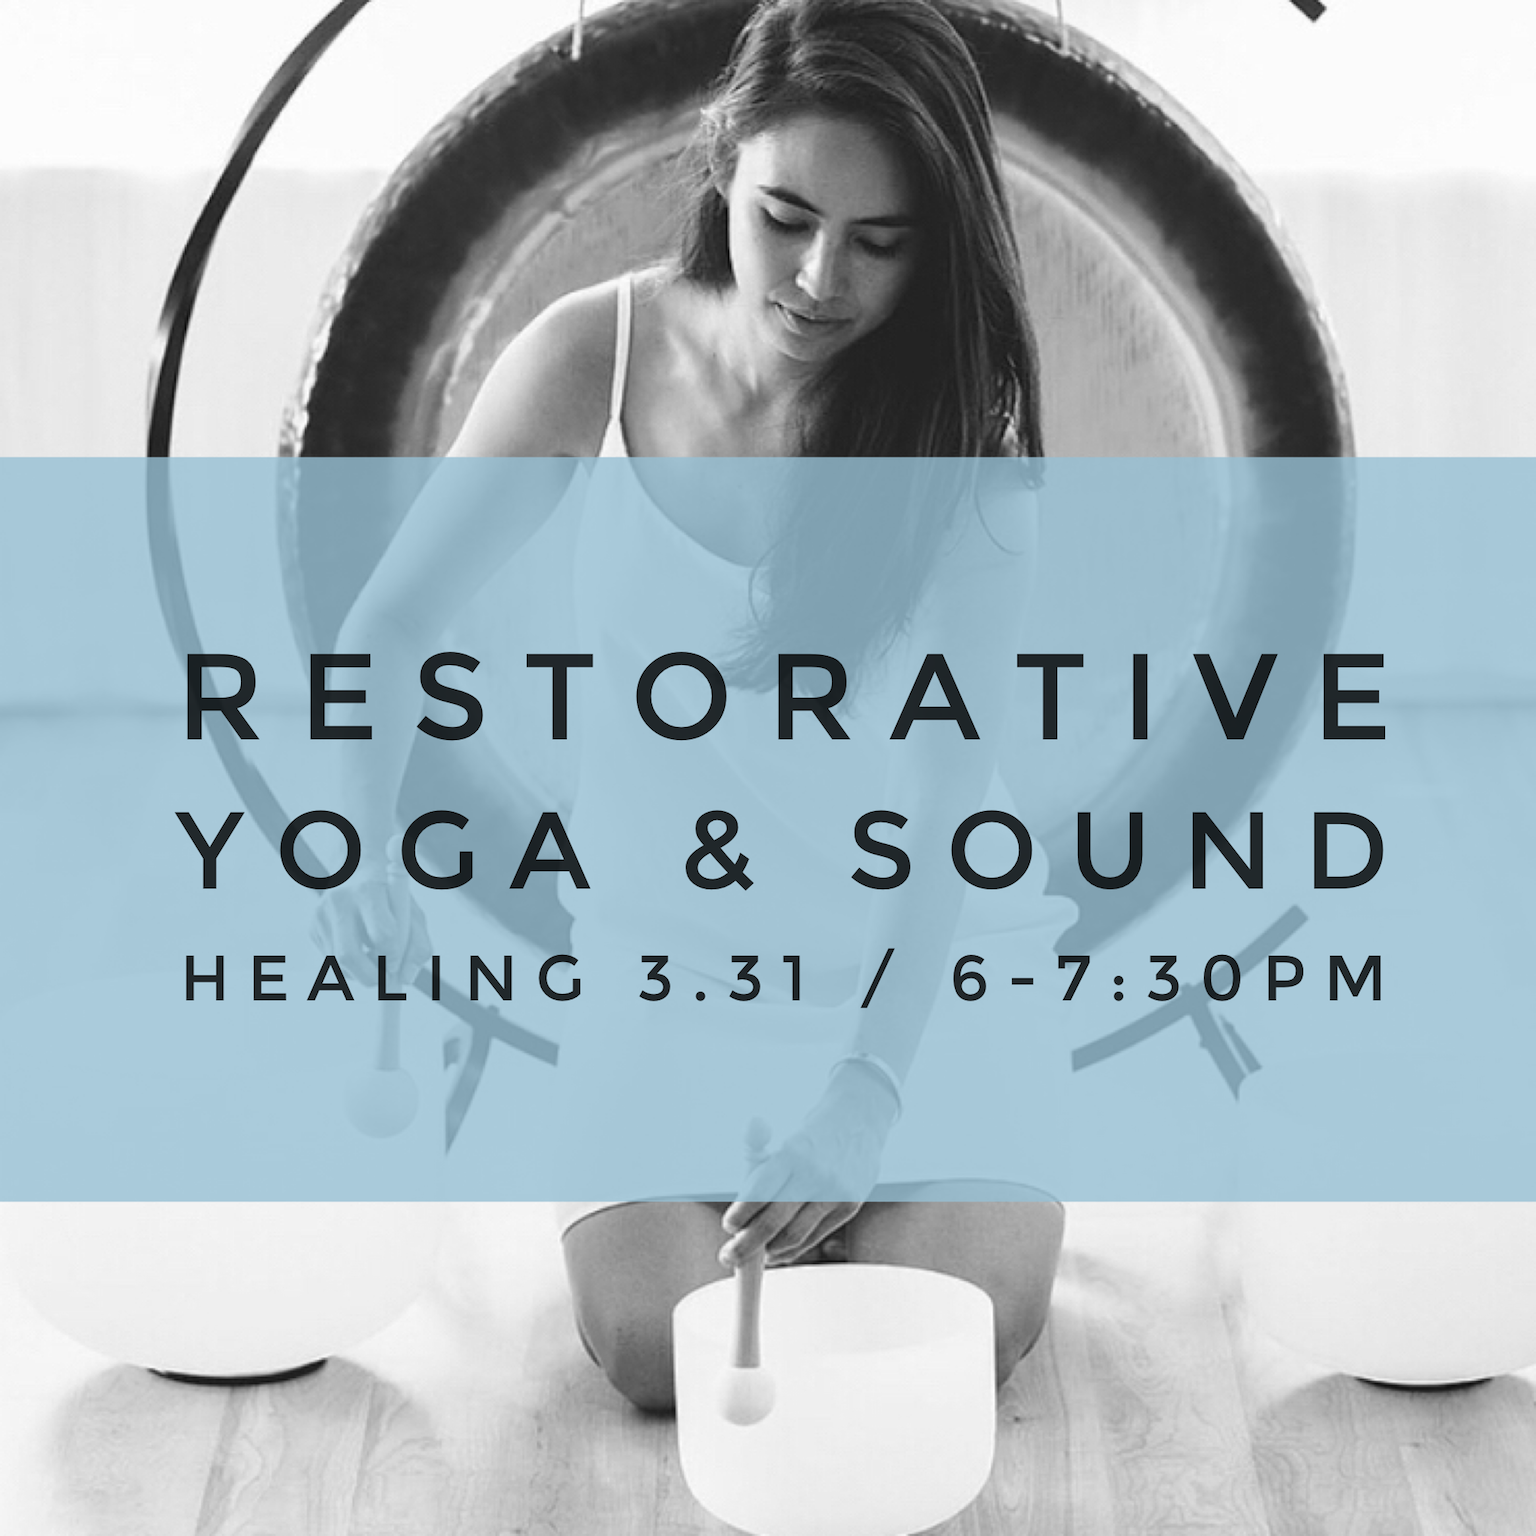 Restorative yoga & Sound healing